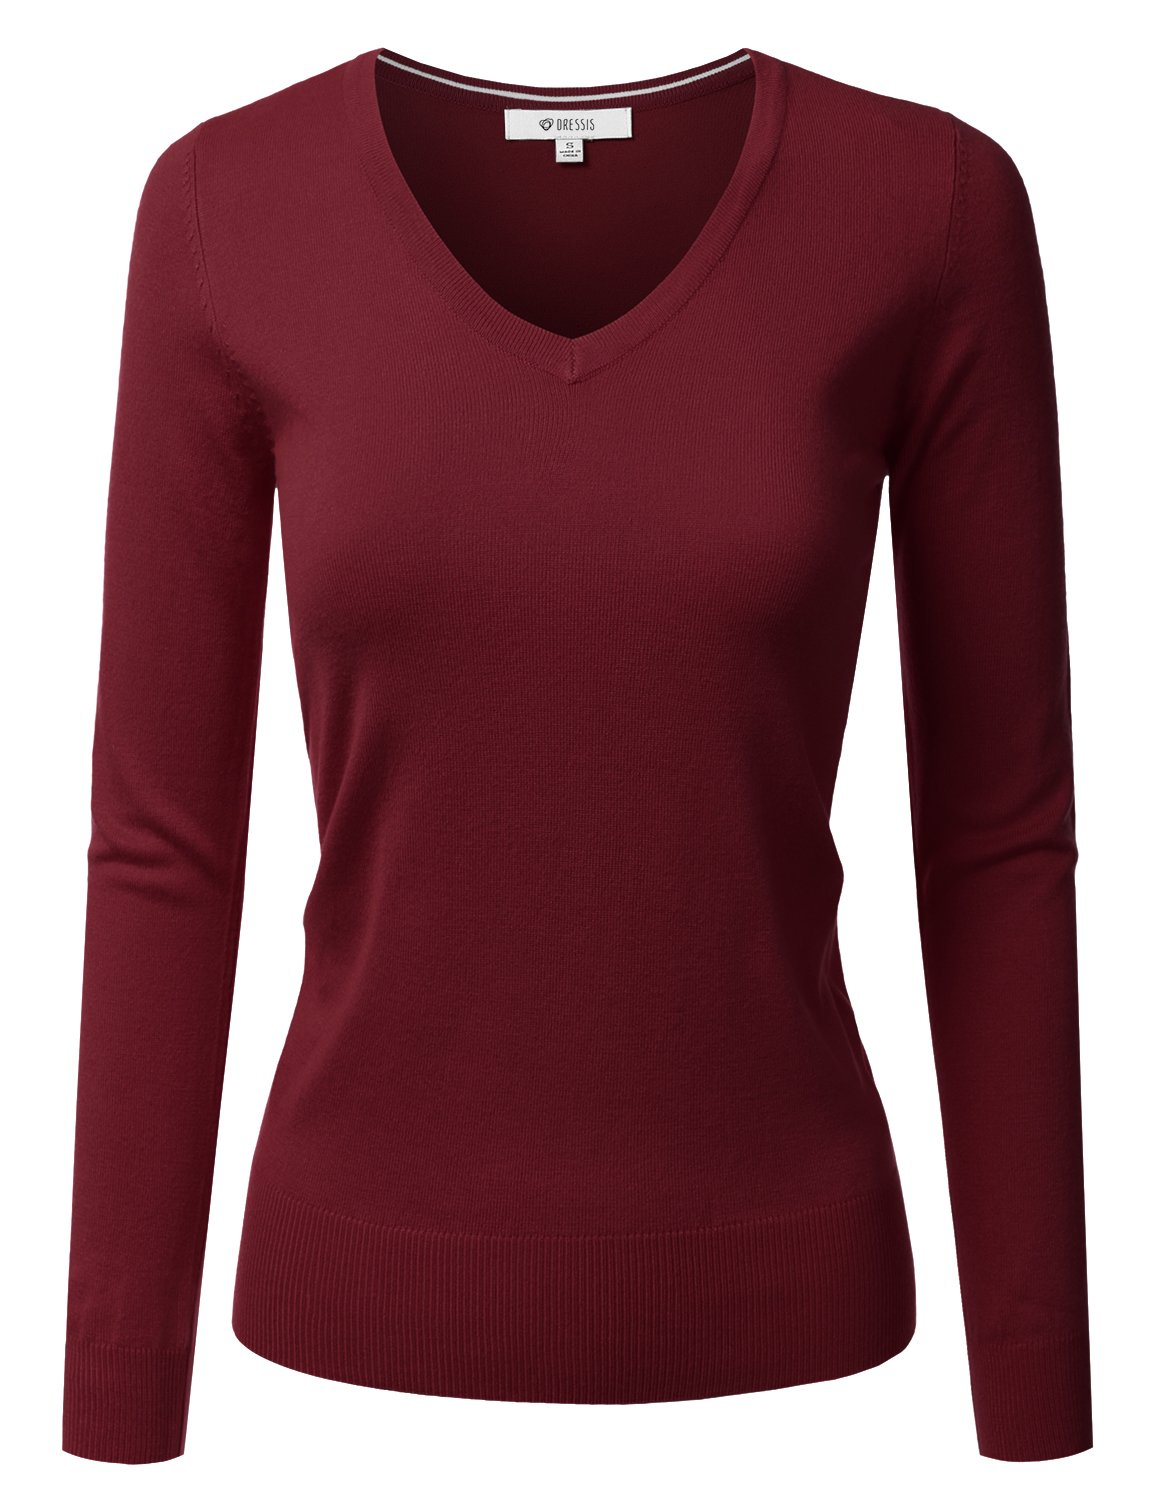 DRESSIS Womens Classic Long Sleeve V-Neck Knit Sweater Top DARKBURGUNDY L